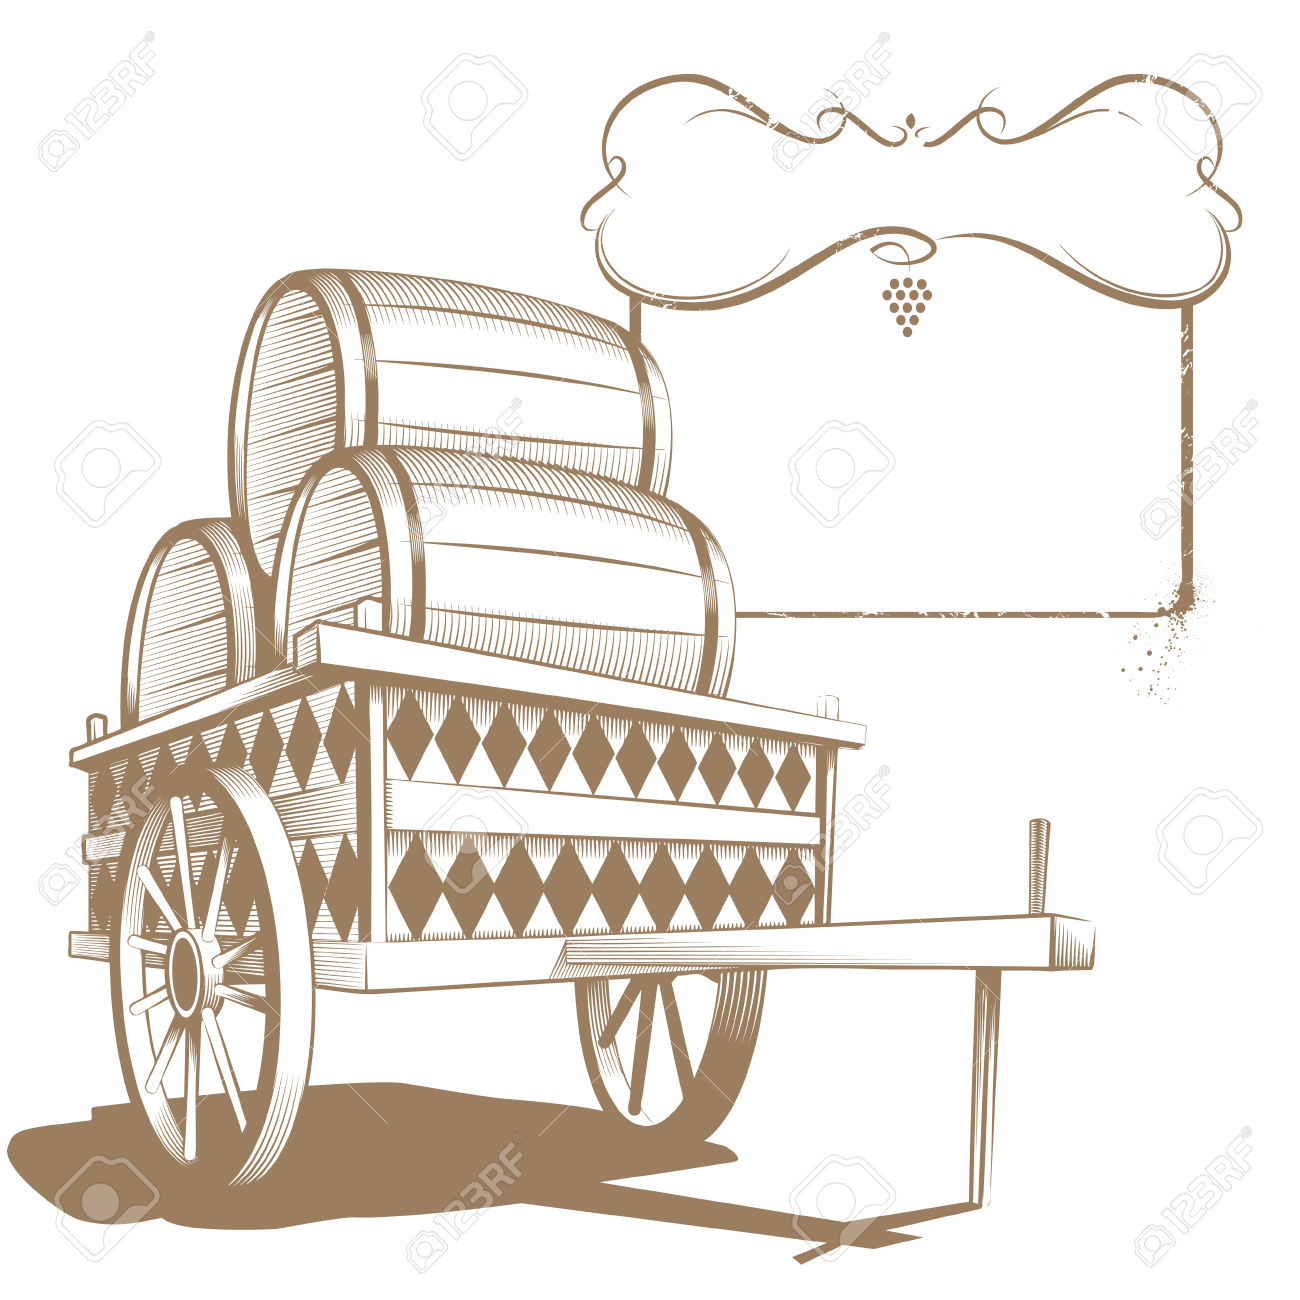 Cart With Flanks In Engraving Style Royalty Free Cliparts, Vectors.